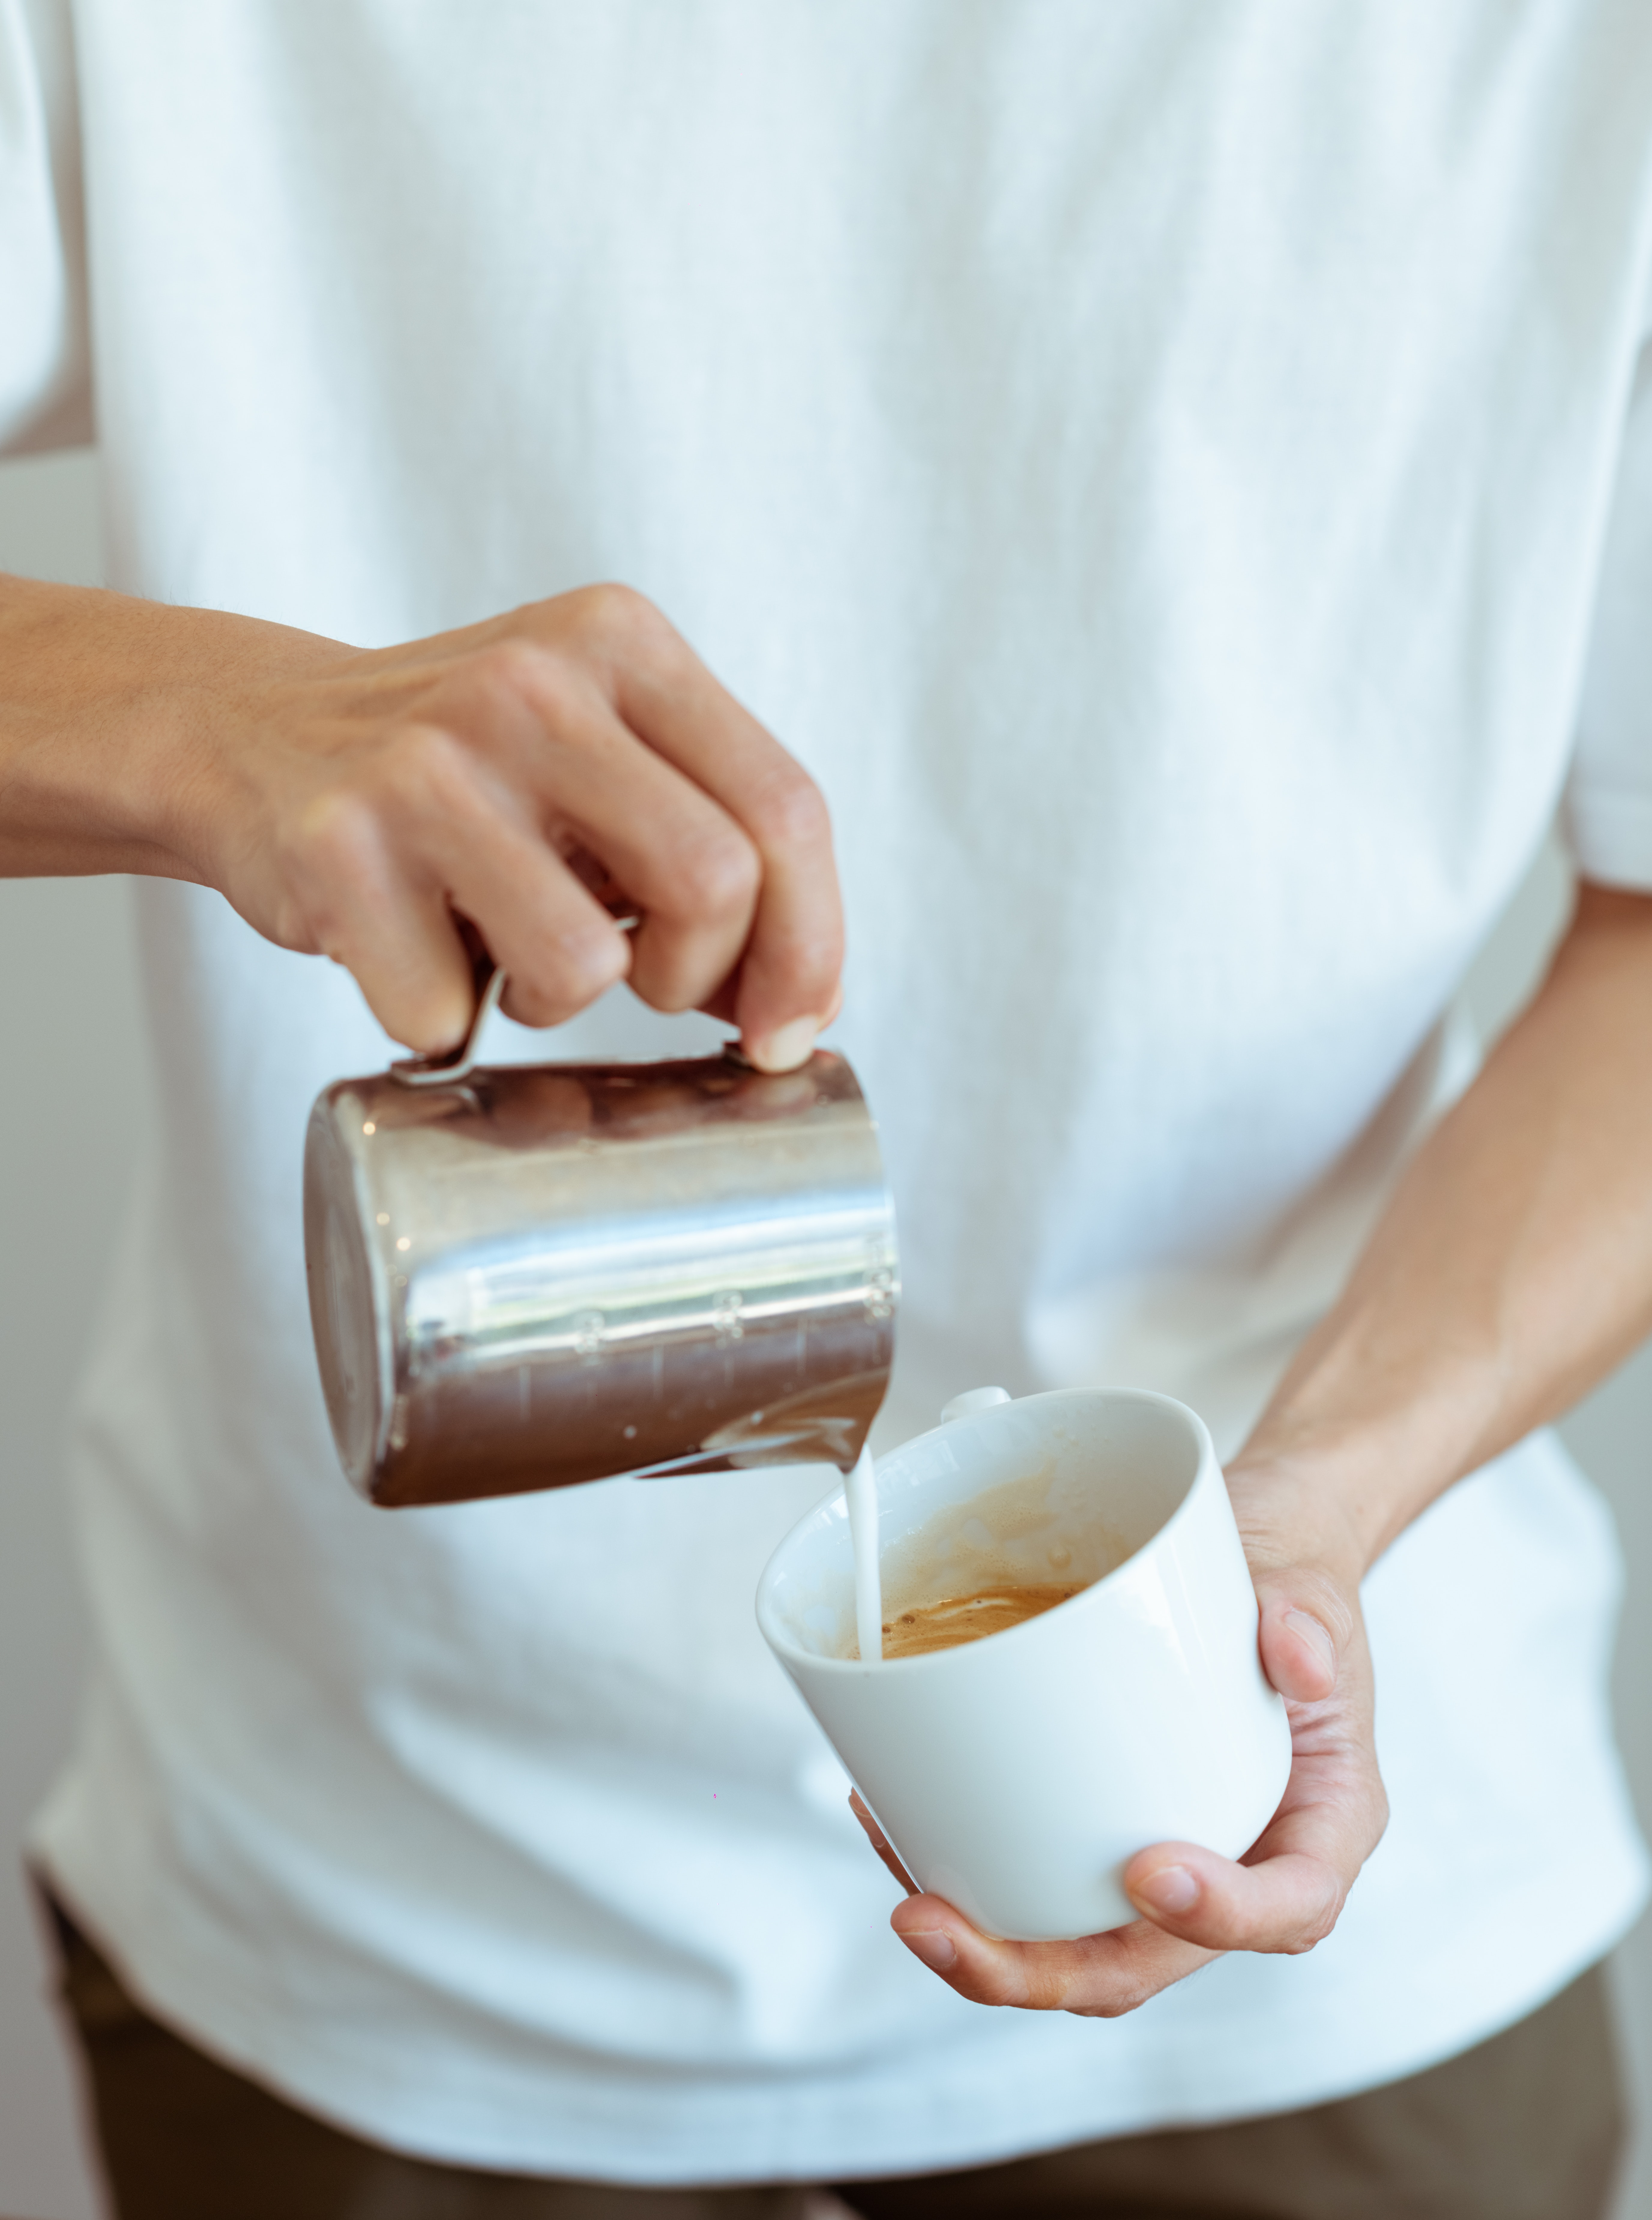 Crop barista pouring whipped milk in white coffee cup ...